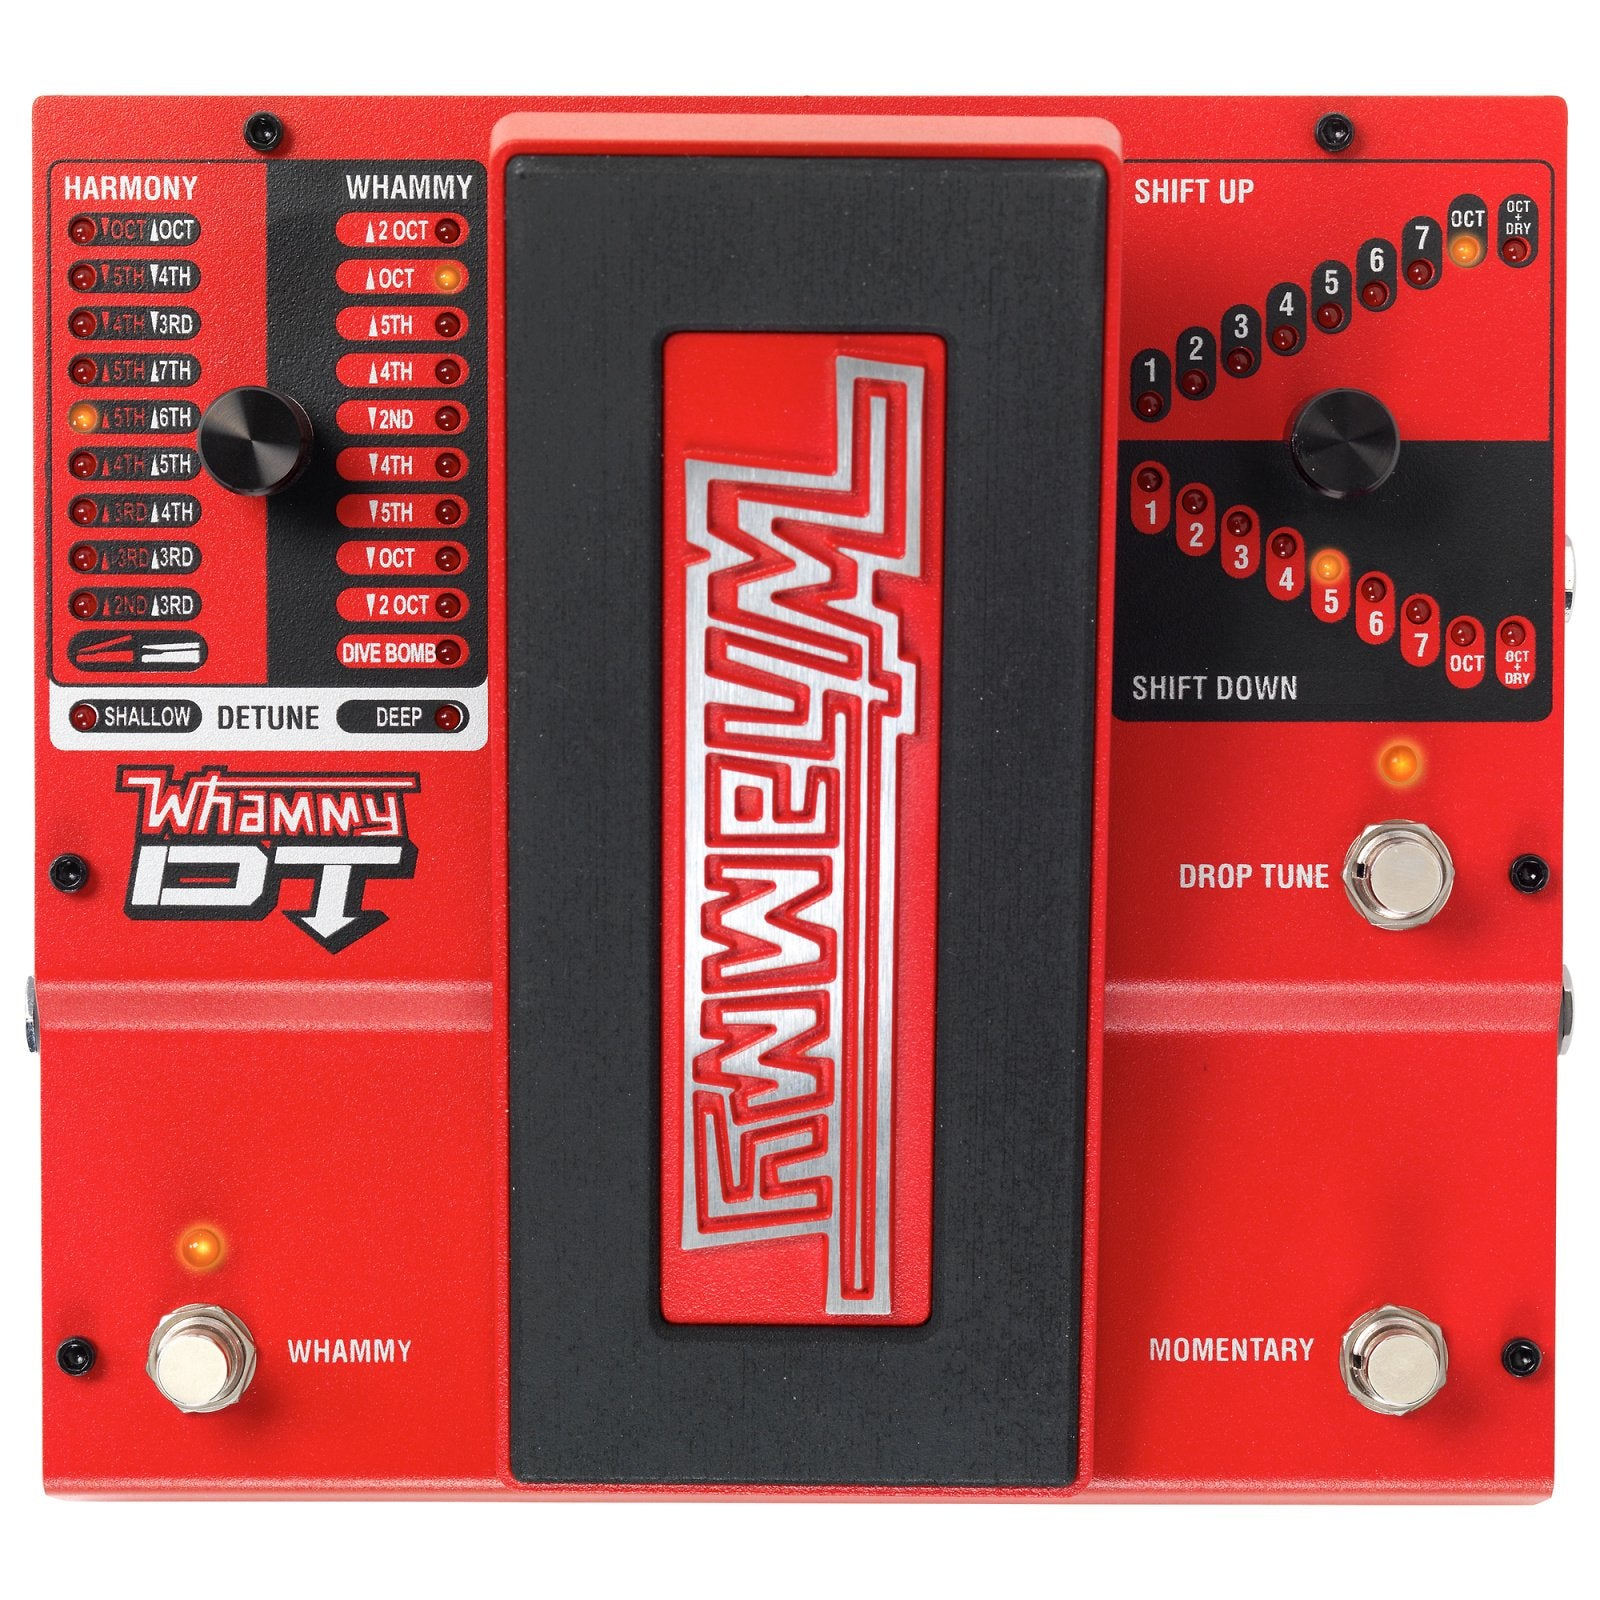 DigiTech Whammy DT Pitch Controller Pedal with Drop Tuning